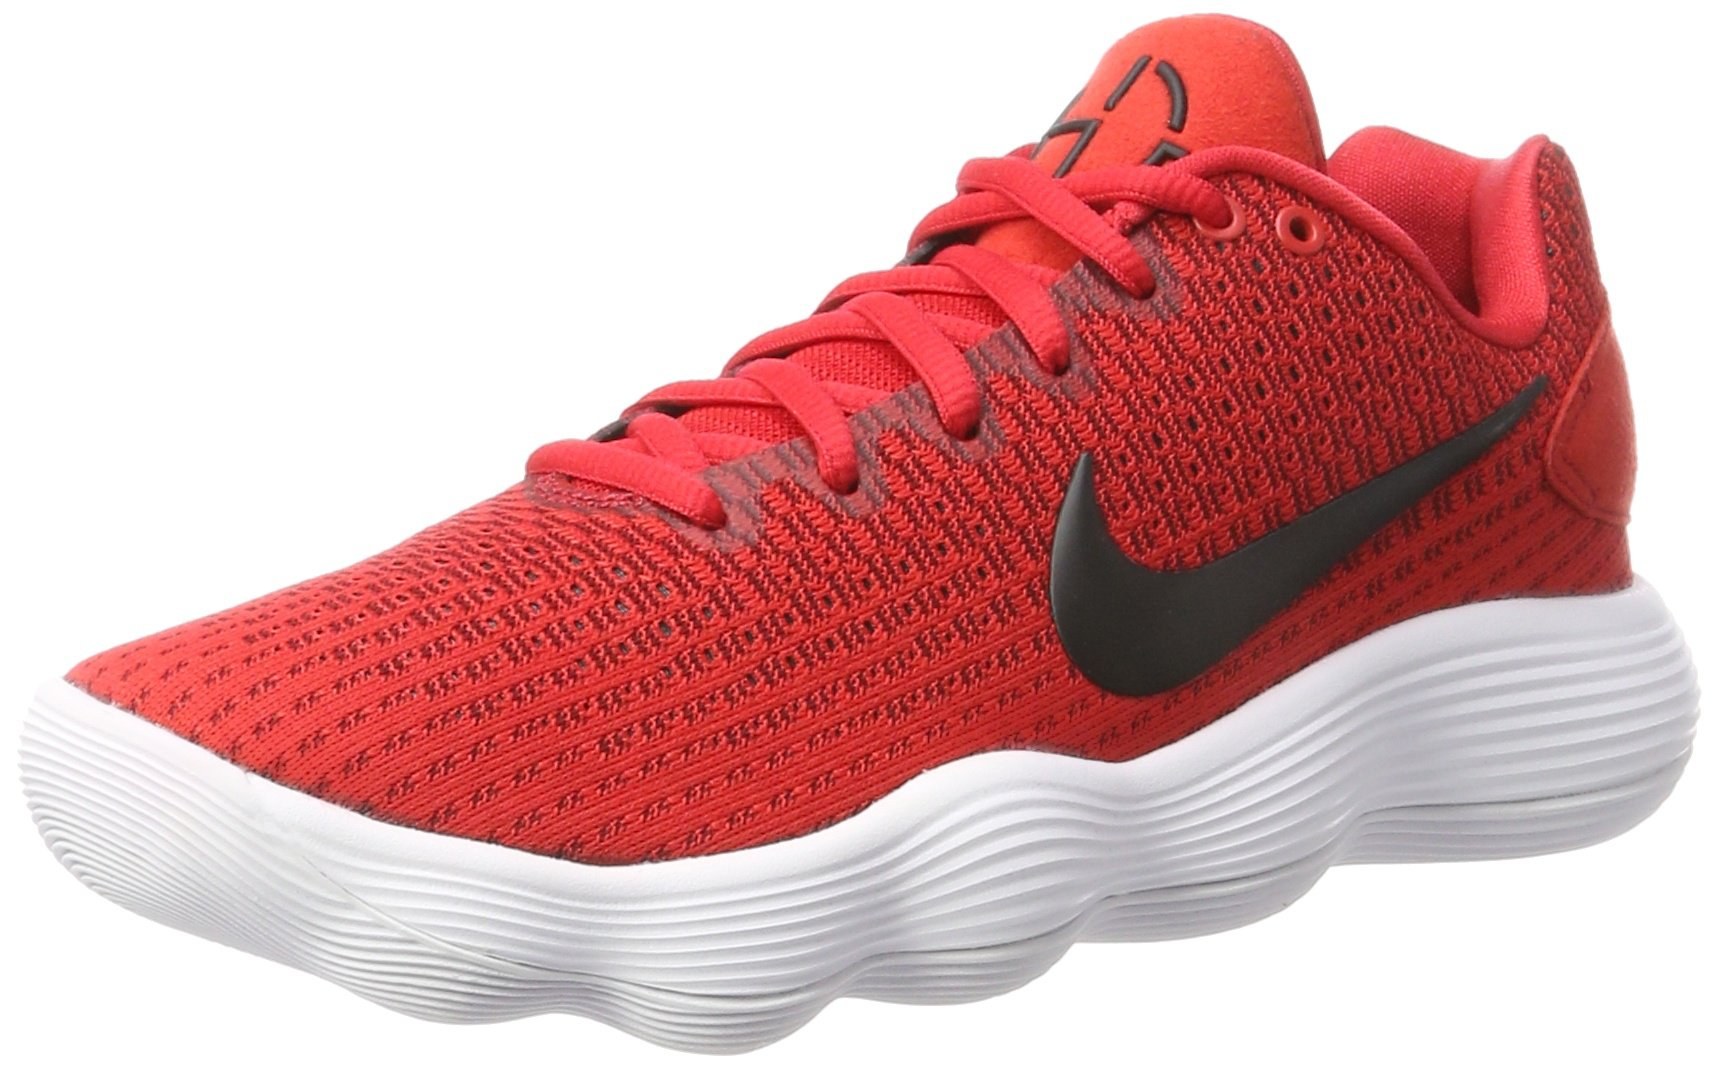 brand new a04b4 4f307 Galleon - Nike Hyperdunk 2017 Low Mens Basketball Trainers 897663 Sneakers  Shoes (UK 10 US 11 EU 45, University Red Black White 600)